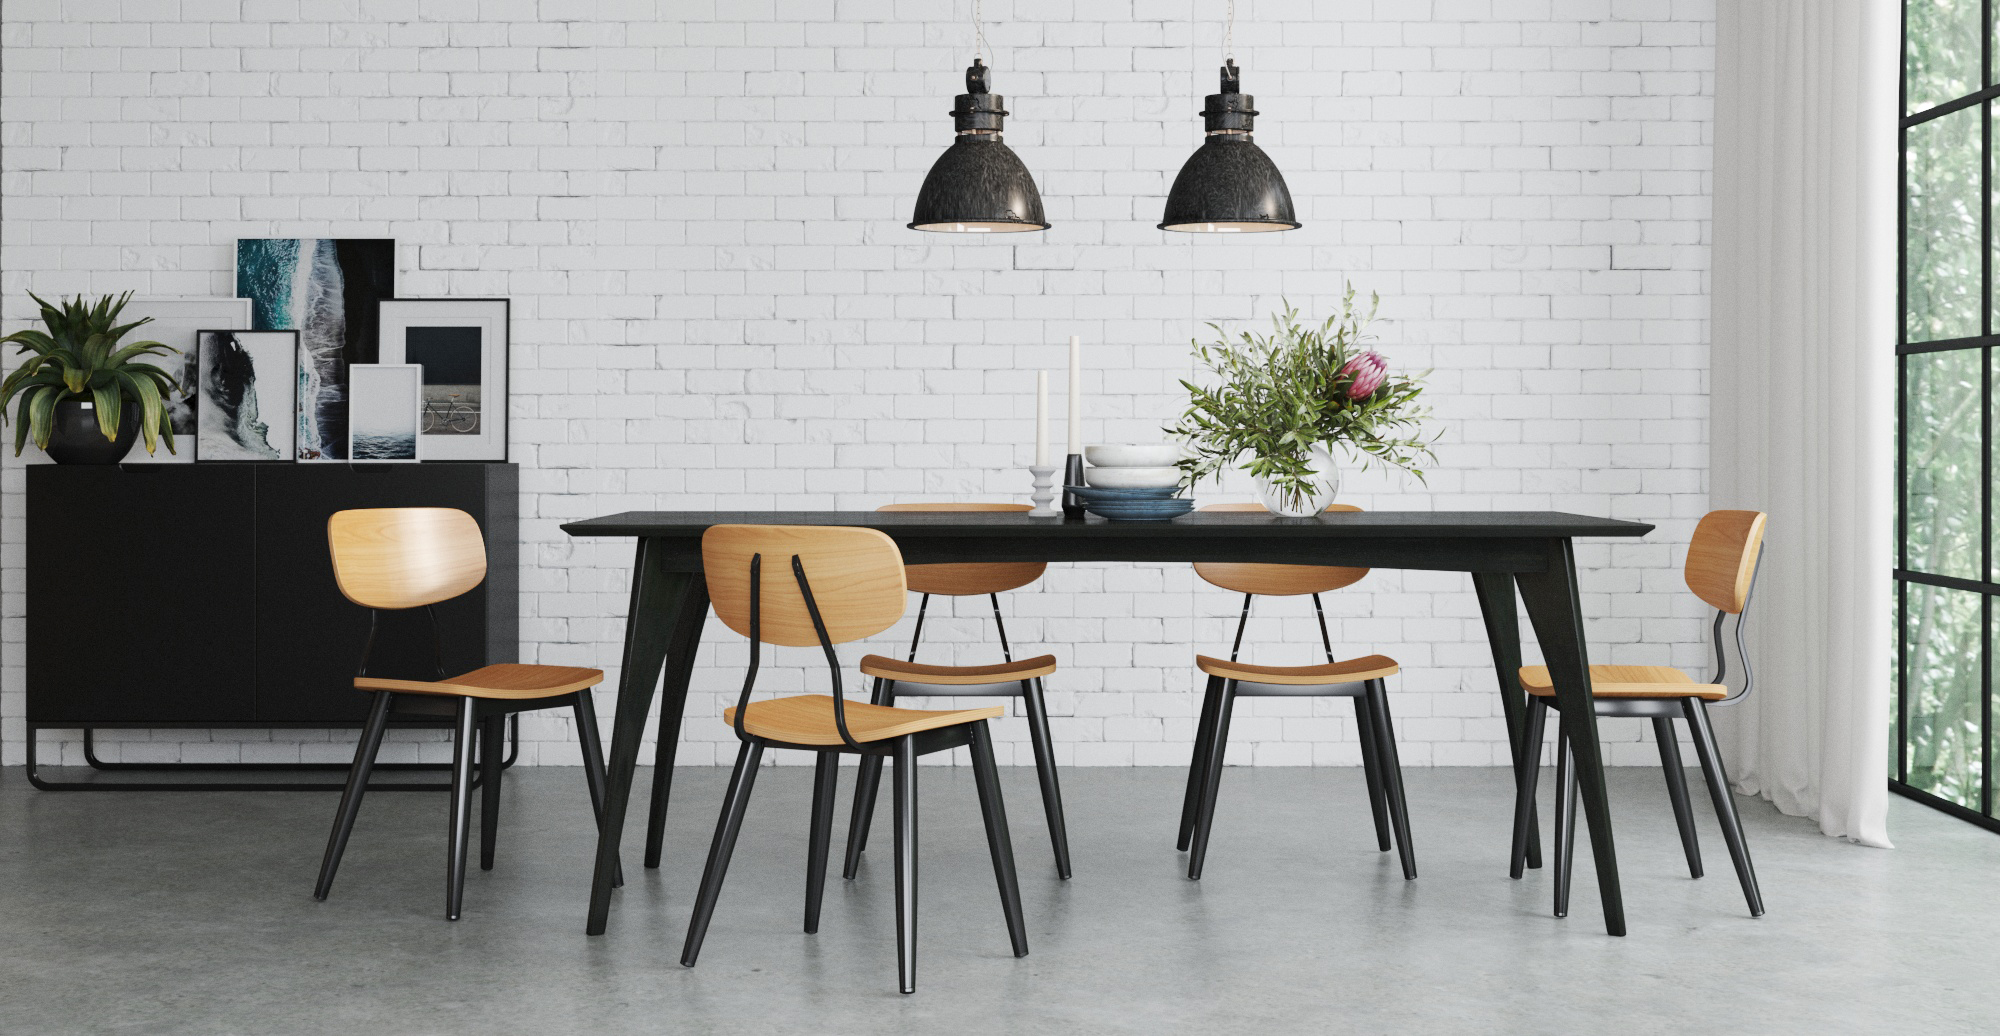 Brosa Aldgate Set of 2 Dining Chairs styled in modern contemporary dining room